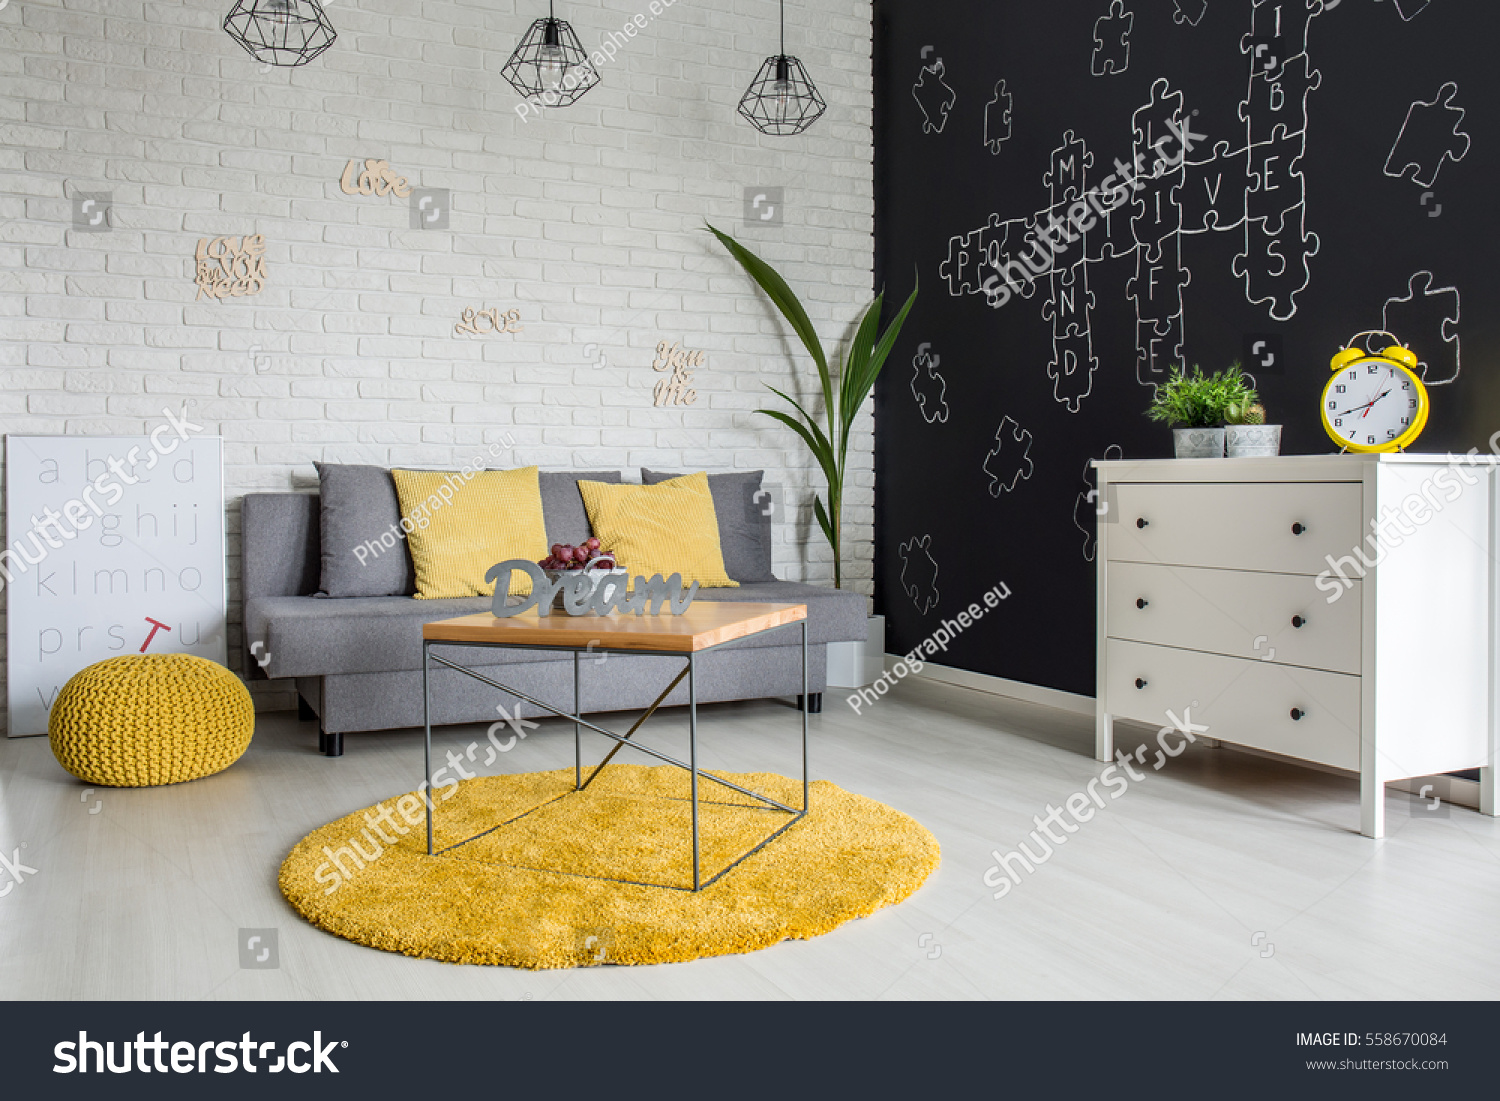 Room With Sofa Dresser Blackboard Wall And Yellow Details